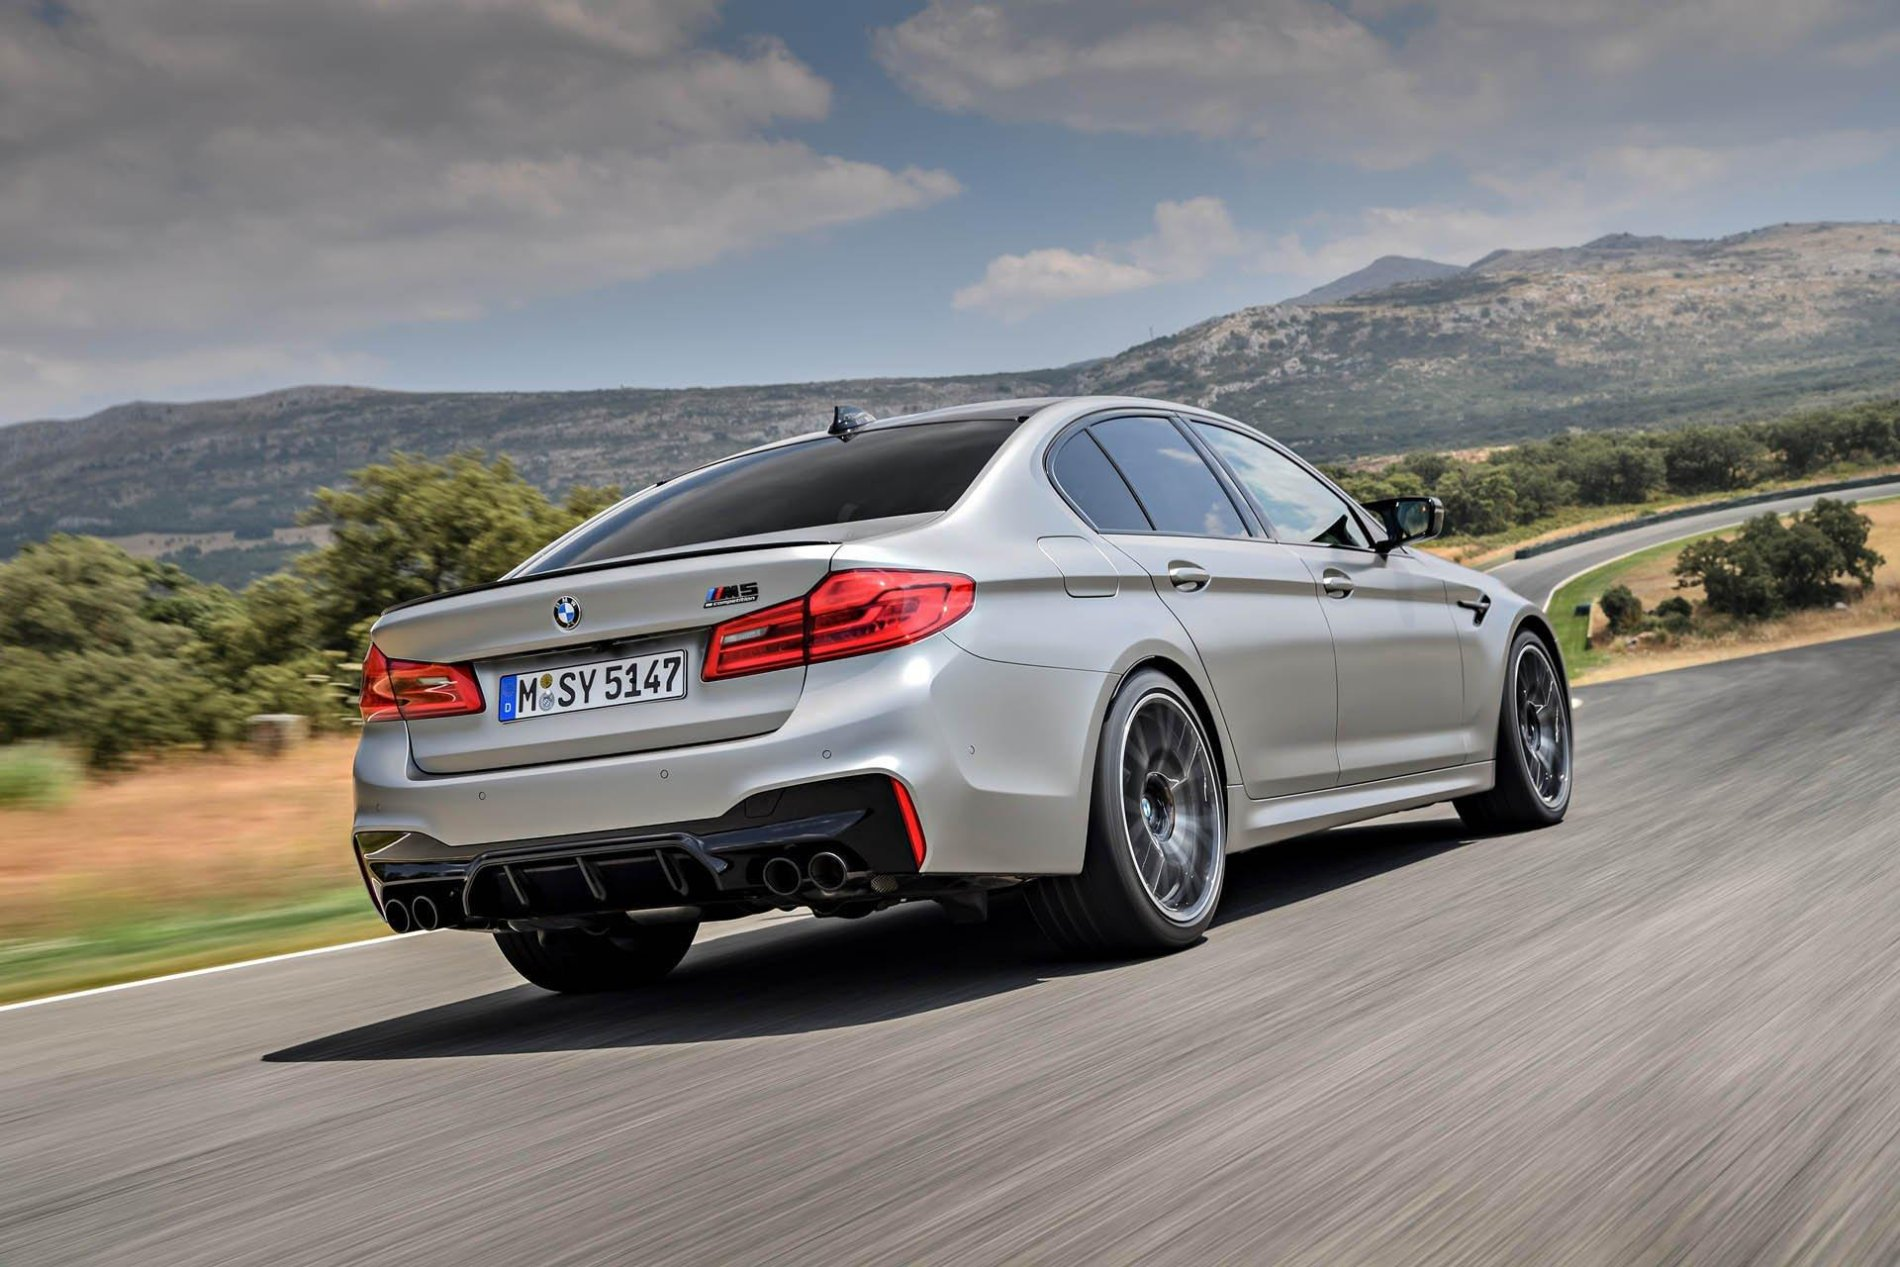 BMW M5 Competition - Galerie Foto - BMW M5 Competition - Galerie Foto